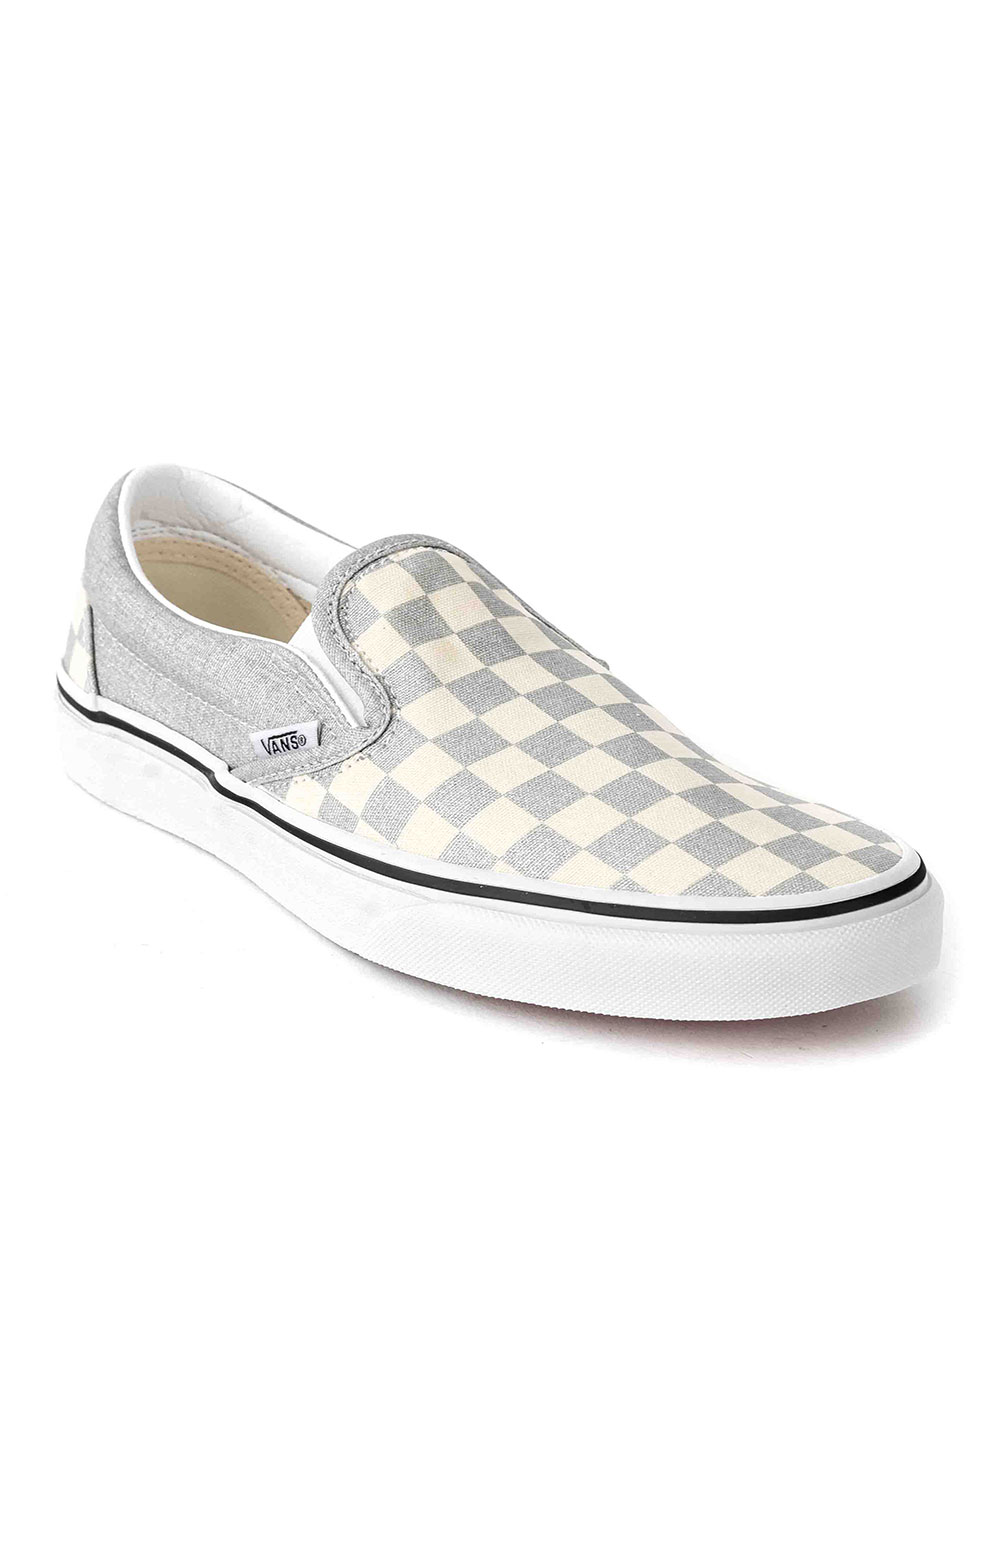 (U38WWS3) Checkerboard Classic Slip-On Shoe - Silver 3